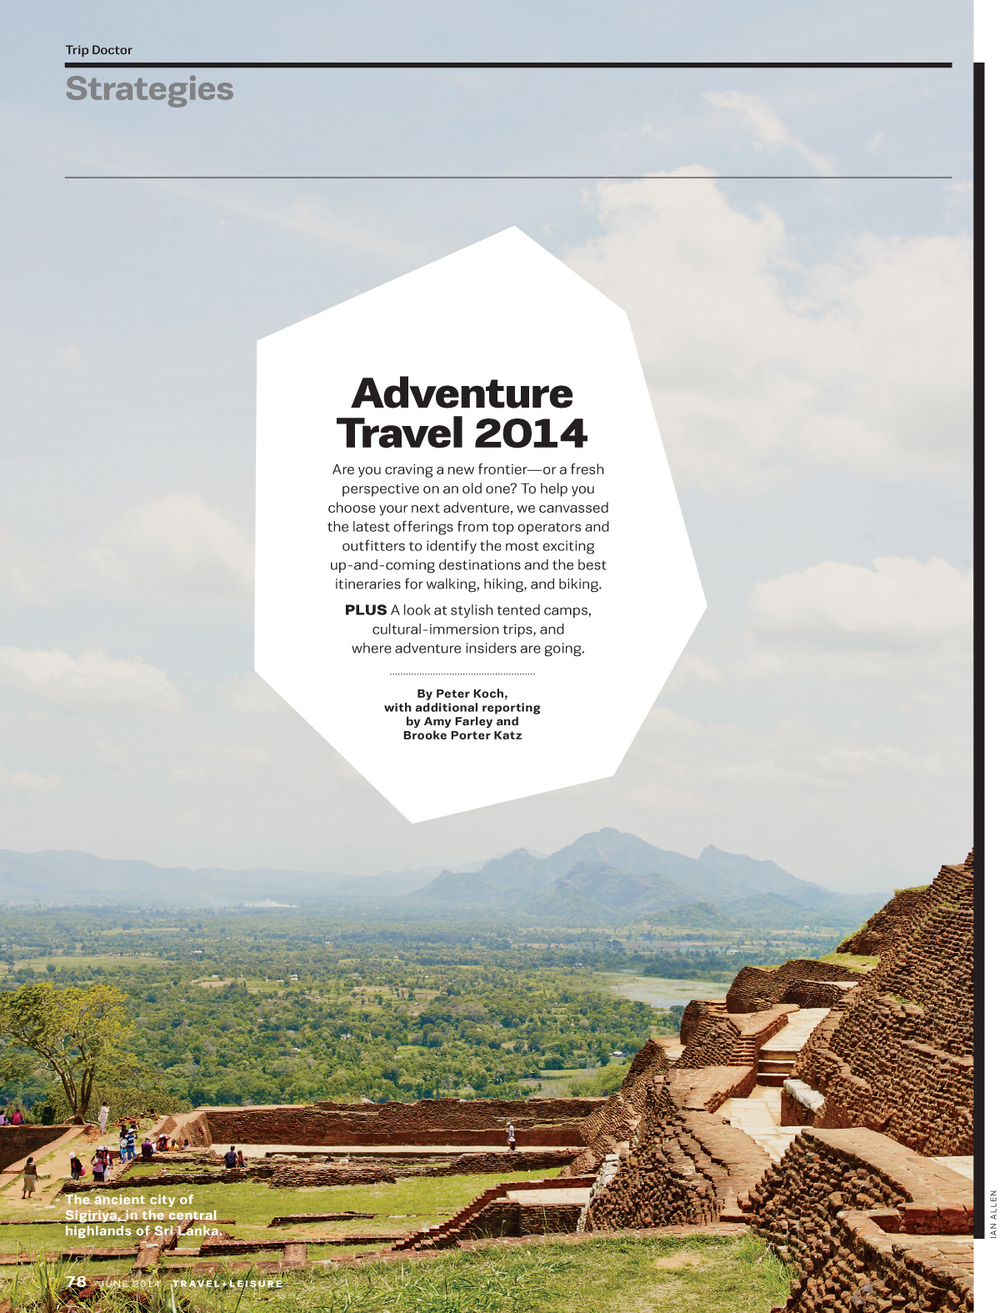 Travel + Leisure, June 2014